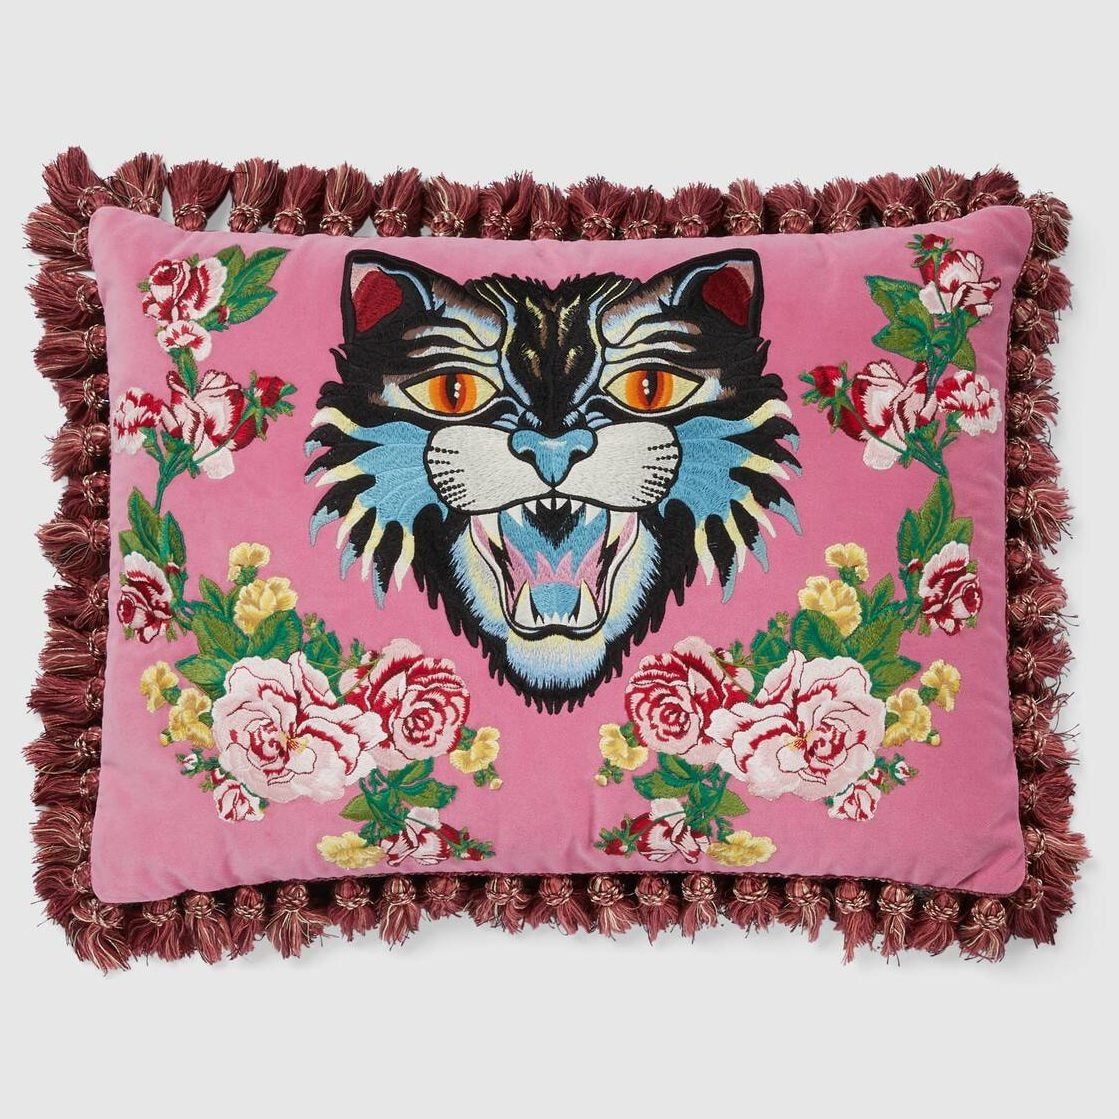 482751_ZAF18_5675_001_100_0000_Light-Velvet-cushion-with-Angry-Cat-embroidery